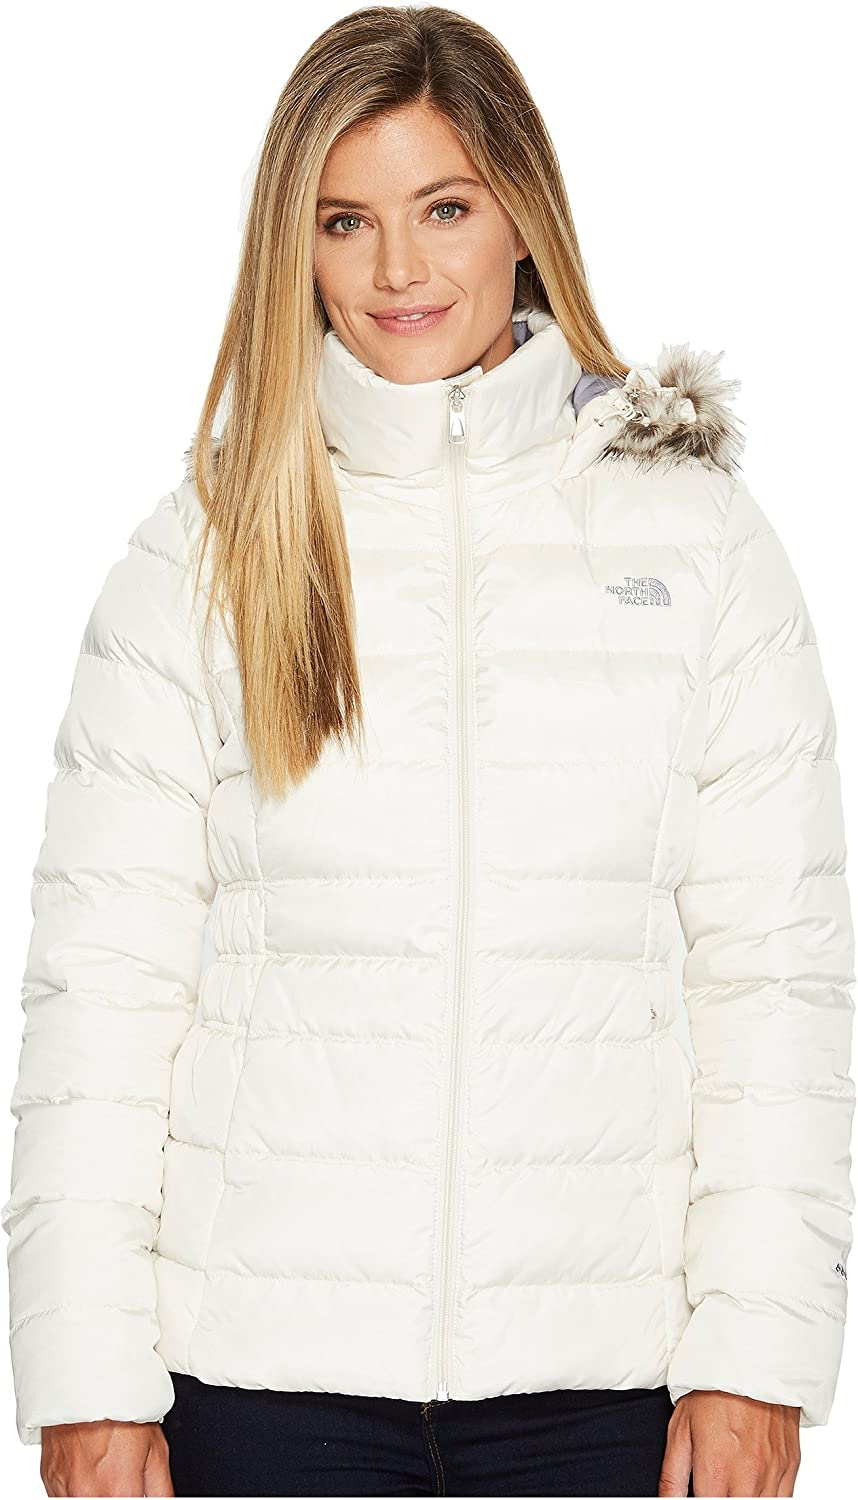 The North Face Gotham II Wn's Jacket, Chaqueta